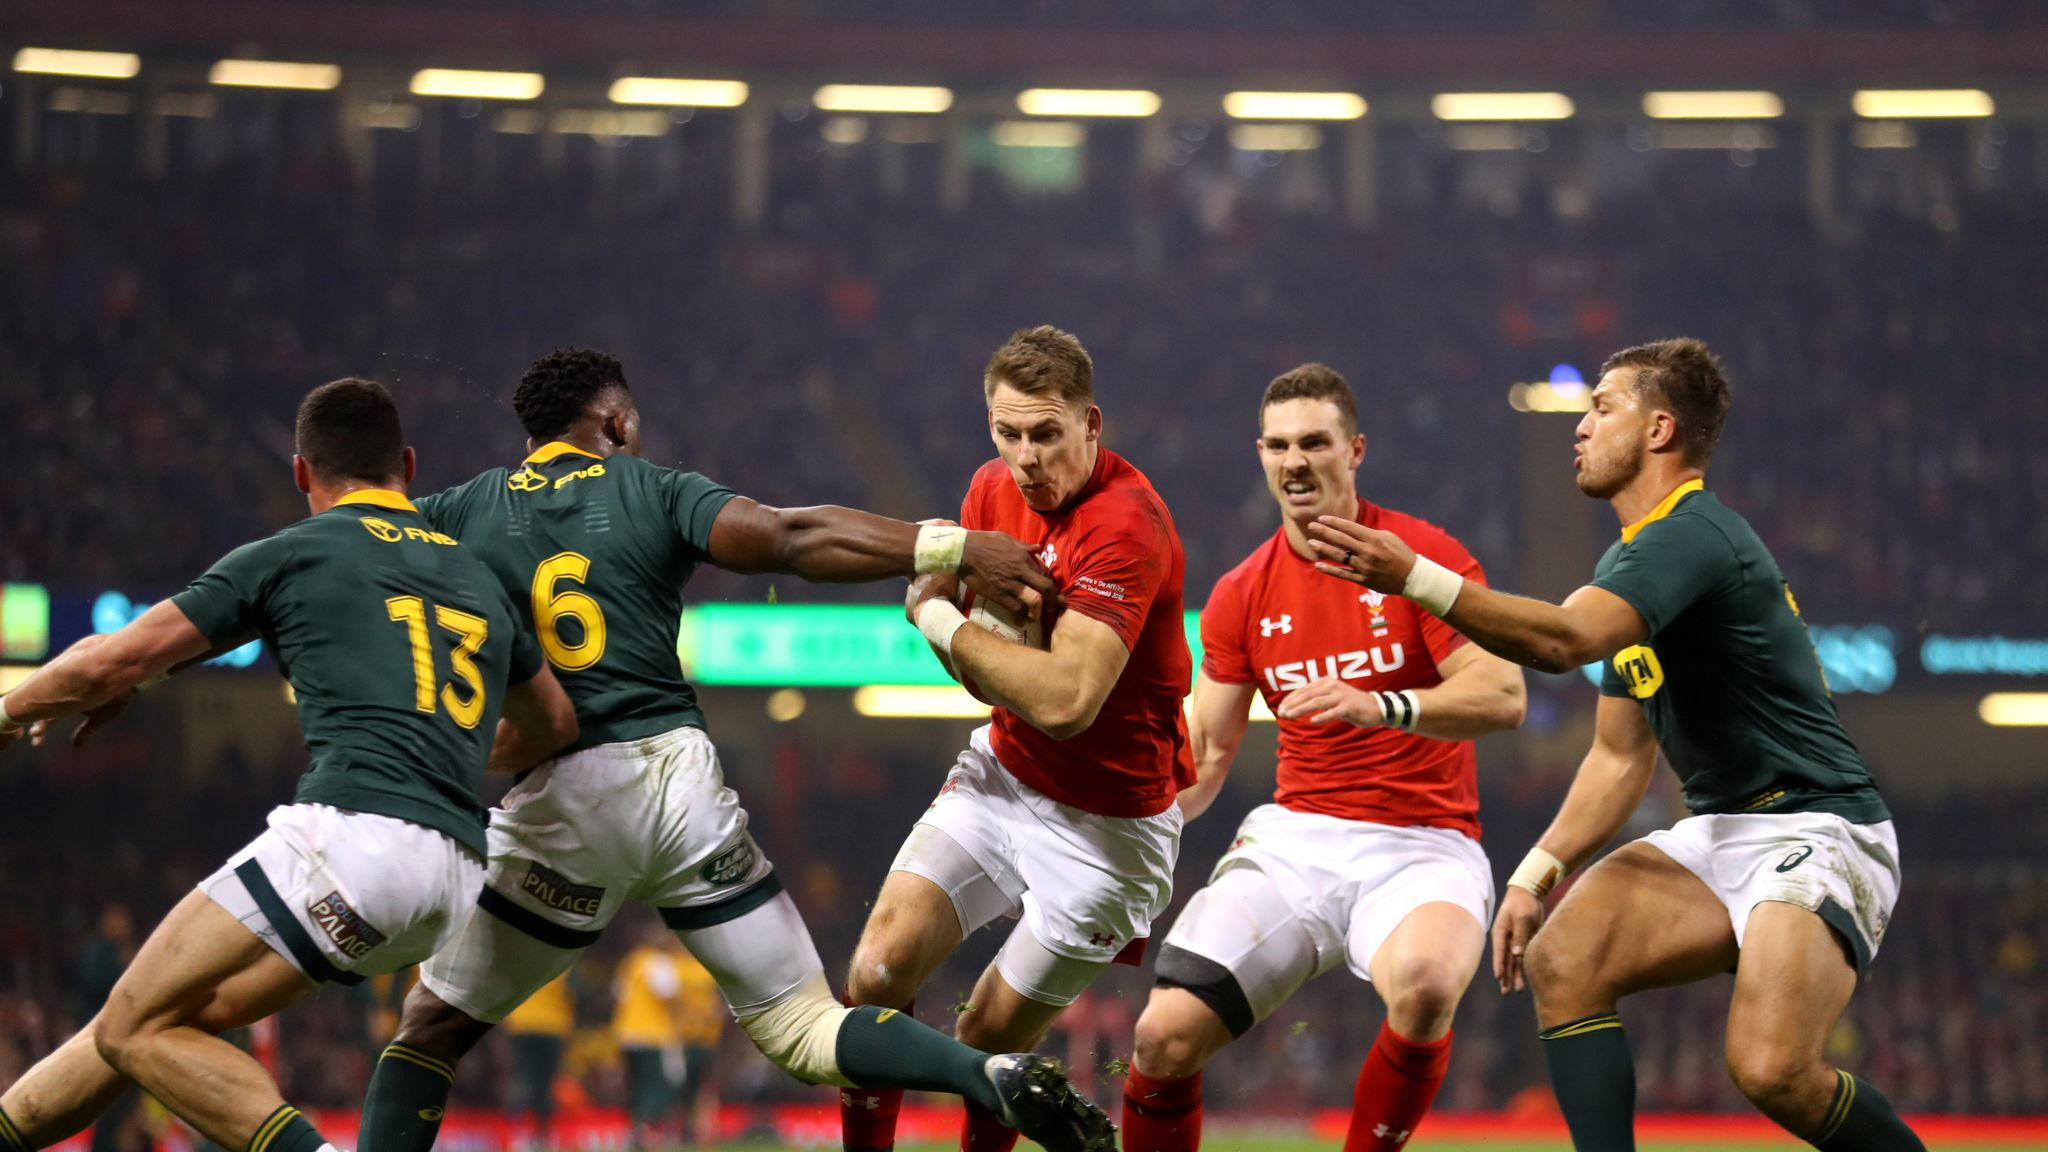 South Africa wary of 'formidable' Wales, says assistant coach Matt Proudfoot